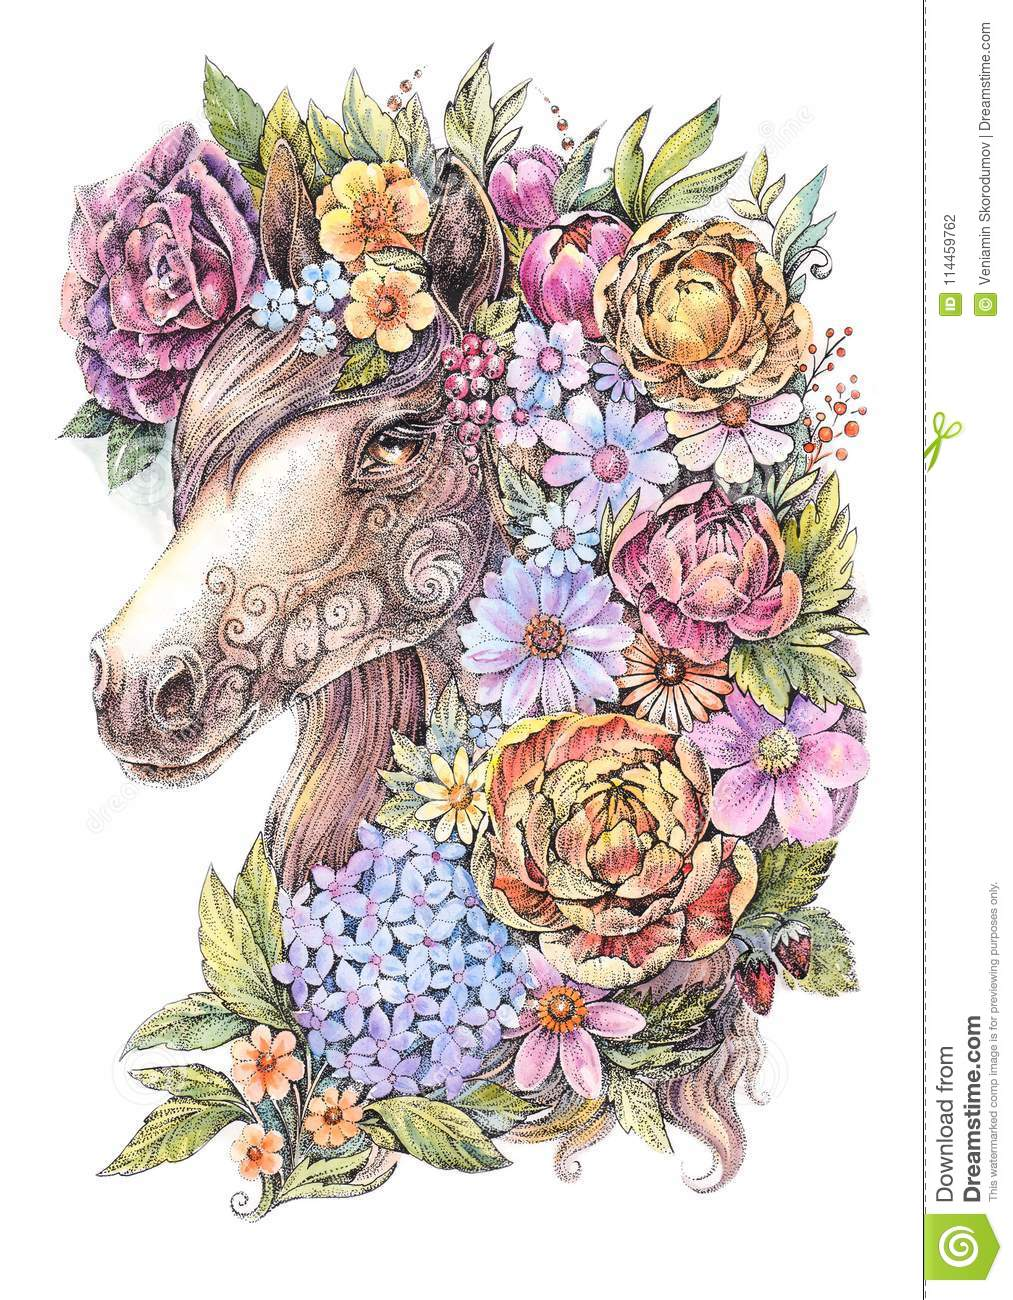 Drawing Horse In Flowers Watercolor Tattoo Stock Illustration Illustration Of Retro Portrait 114459762